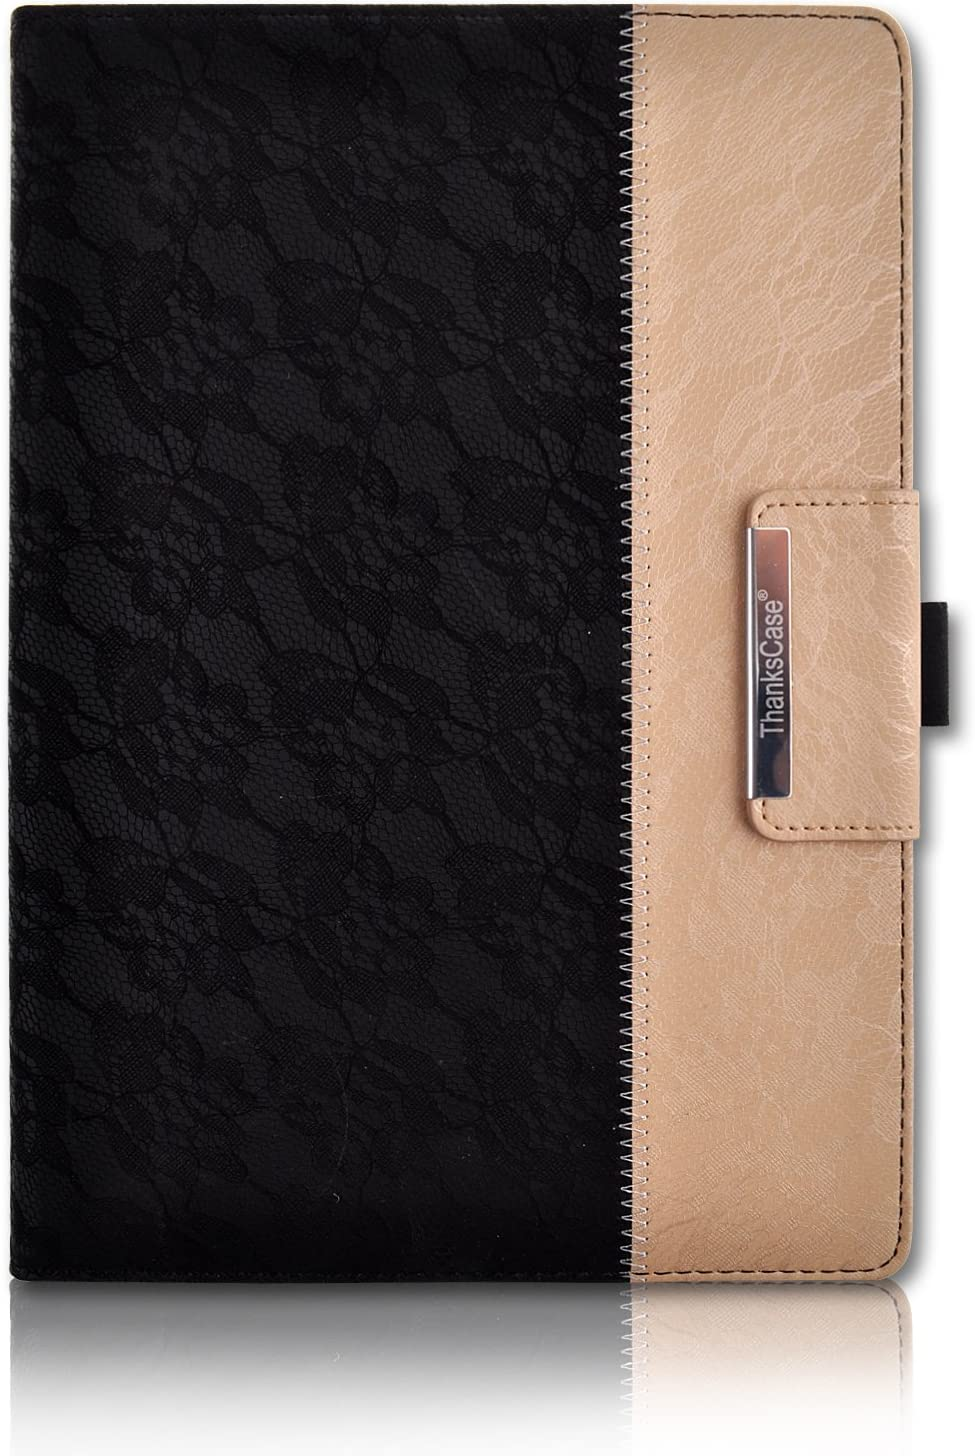 Thankscase iPad 9.7 inch 2018 2017 Case, iPad Air 2 Case, Rotating Case Smart Cover with Stand Build-in Wallet Pocket and Hand Strap for Apple iPad 6th Gen/iPad 5th Gen, (Lace Black Gold)